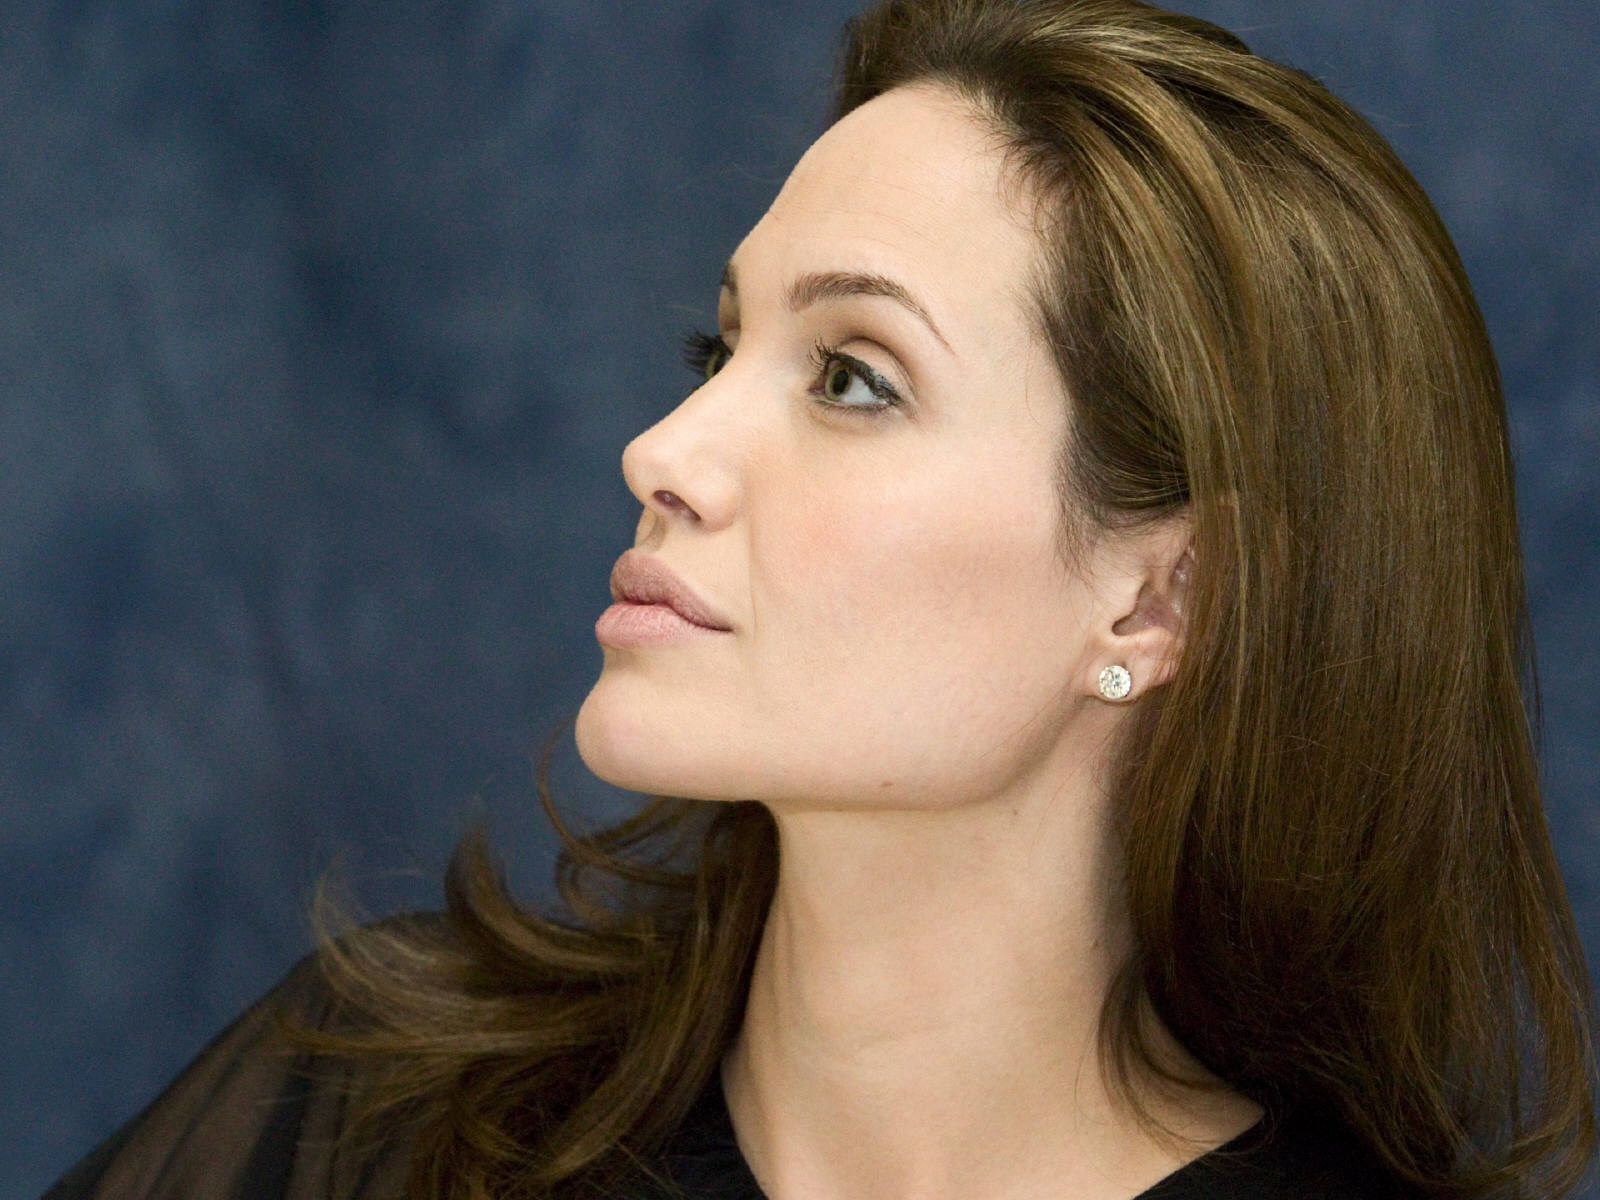 angelina jolie computer wallpaper 50324